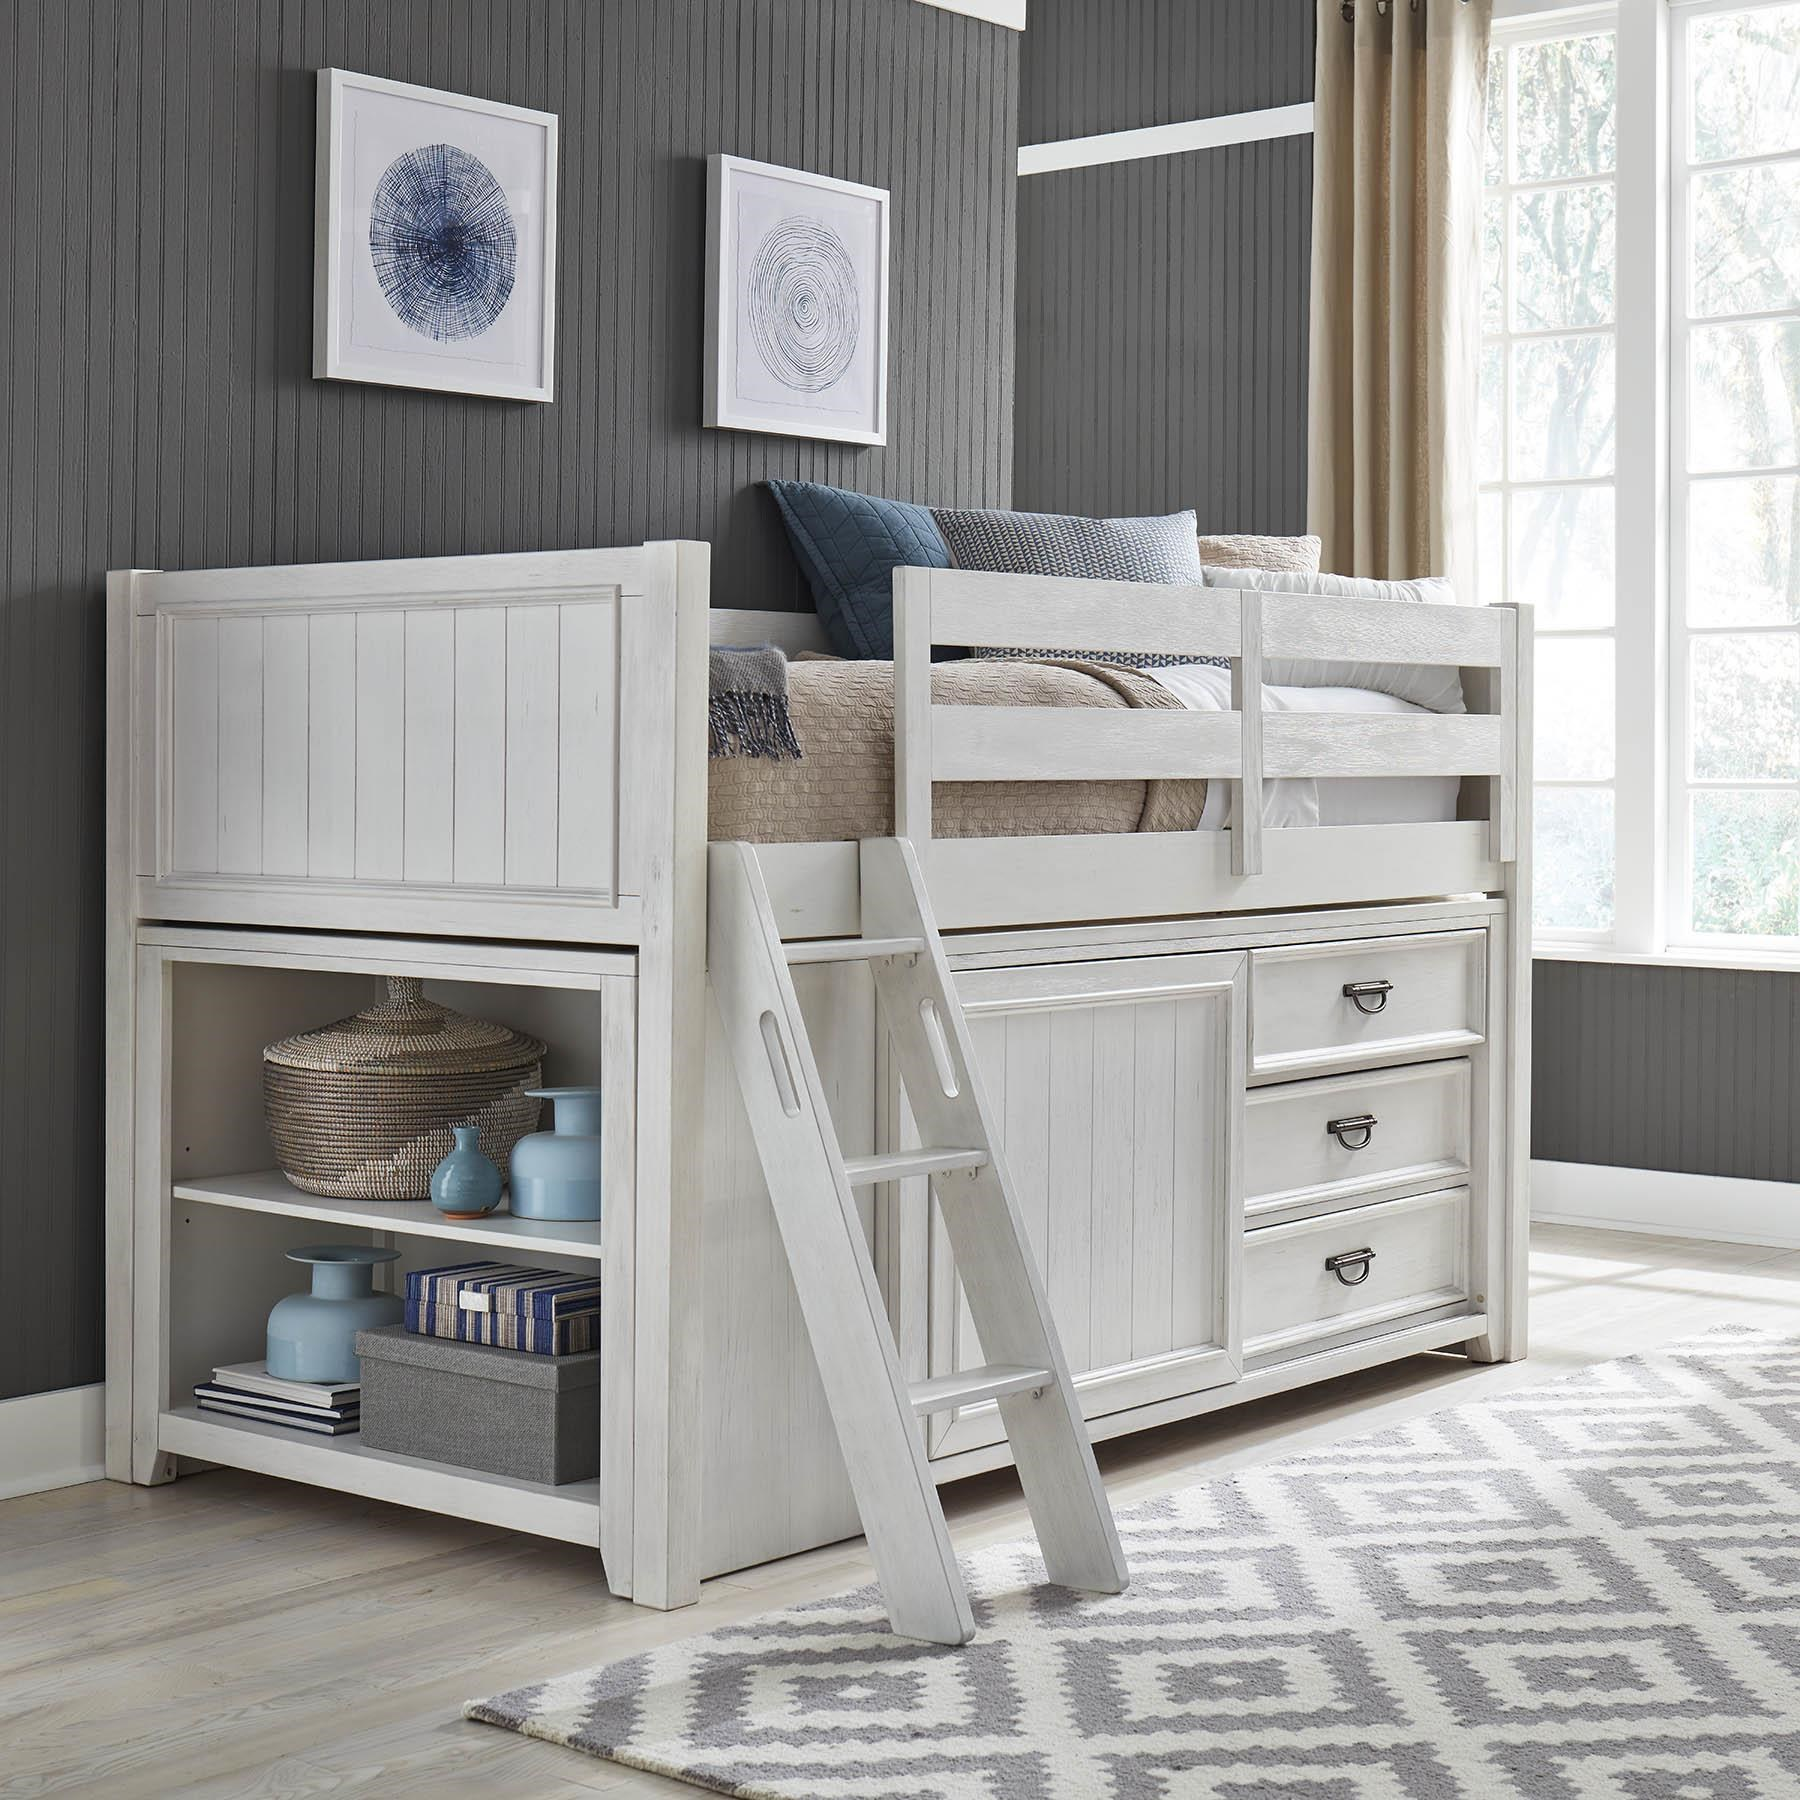 Allyson Park Twin Loft Bed by Liberty Furniture at Darvin Furniture